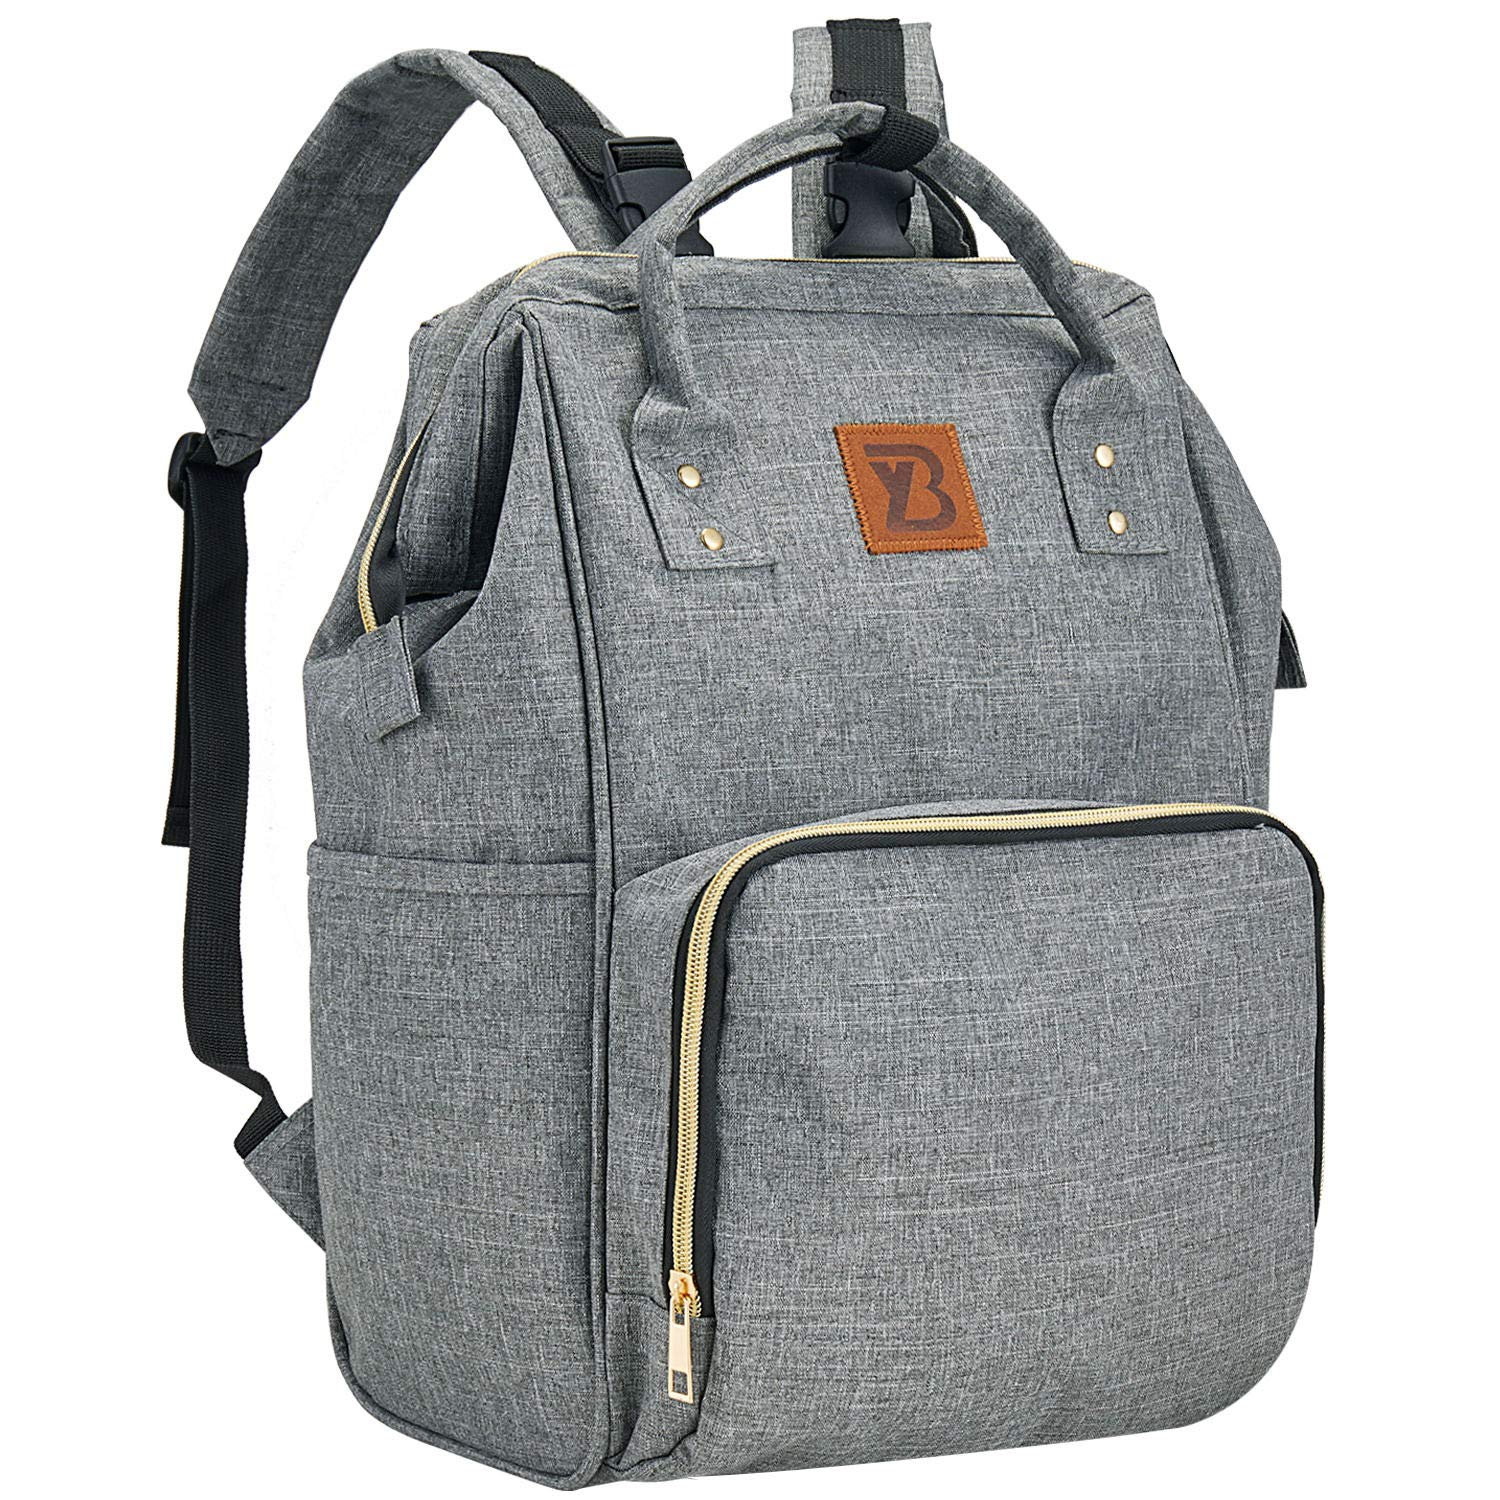 Diaper Bag Backpack, Travel Baby Nappy Changing Bags with Stroller Straps, Large Capacity, Waterproof, Stylish and Multi-Function Maternity Back Pack for Mom and Dad Gray